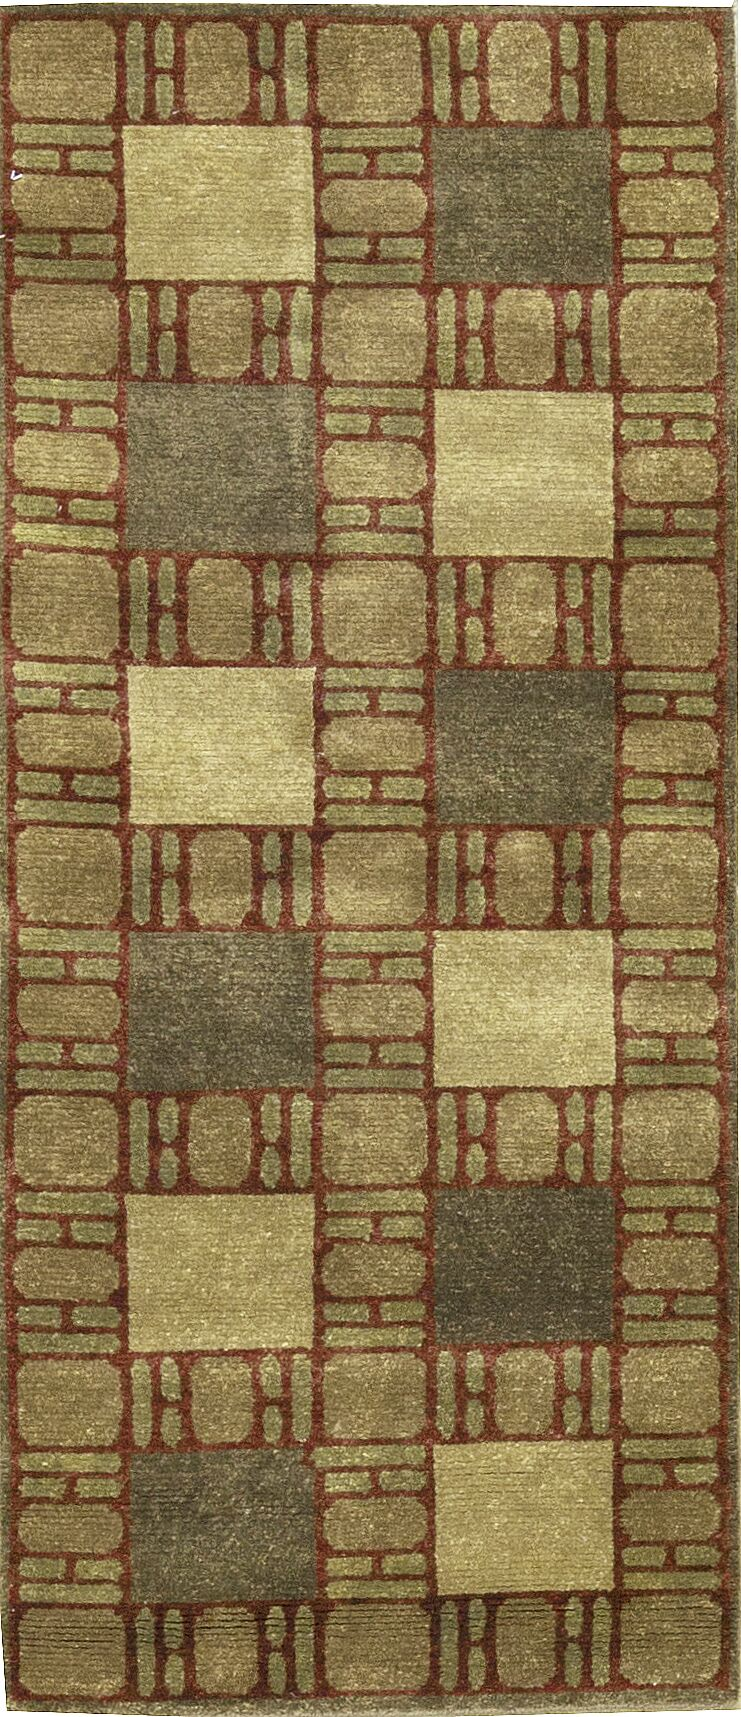 One-of-a-Kind Hand-Knotted Wool Green Indoor Area Rug